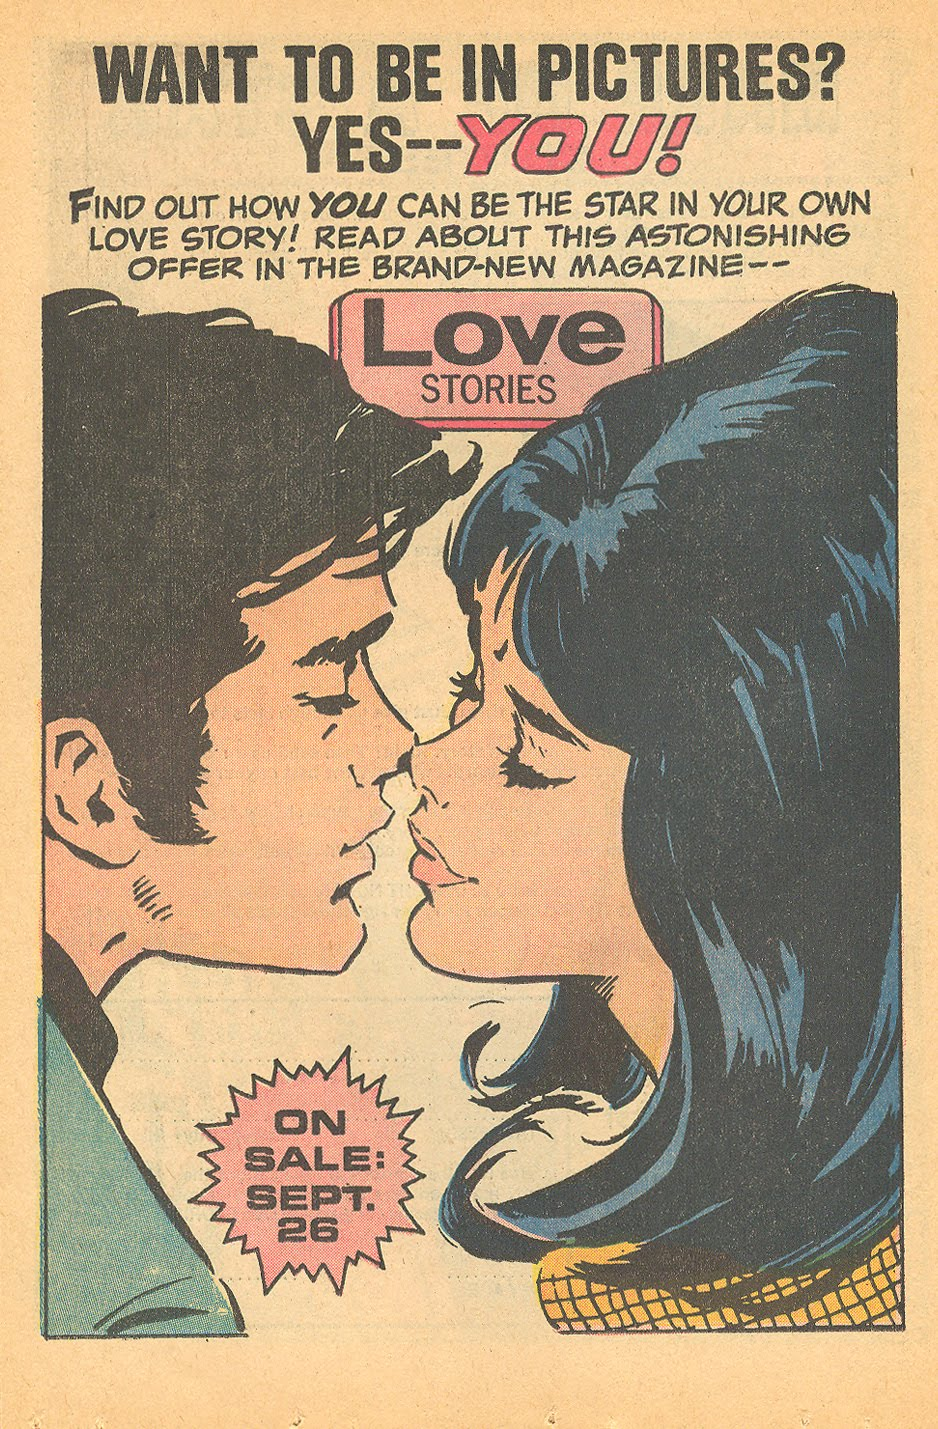 Advertising titles, stories, and collections of books, the house ads of the romance comics are both informative and fun!